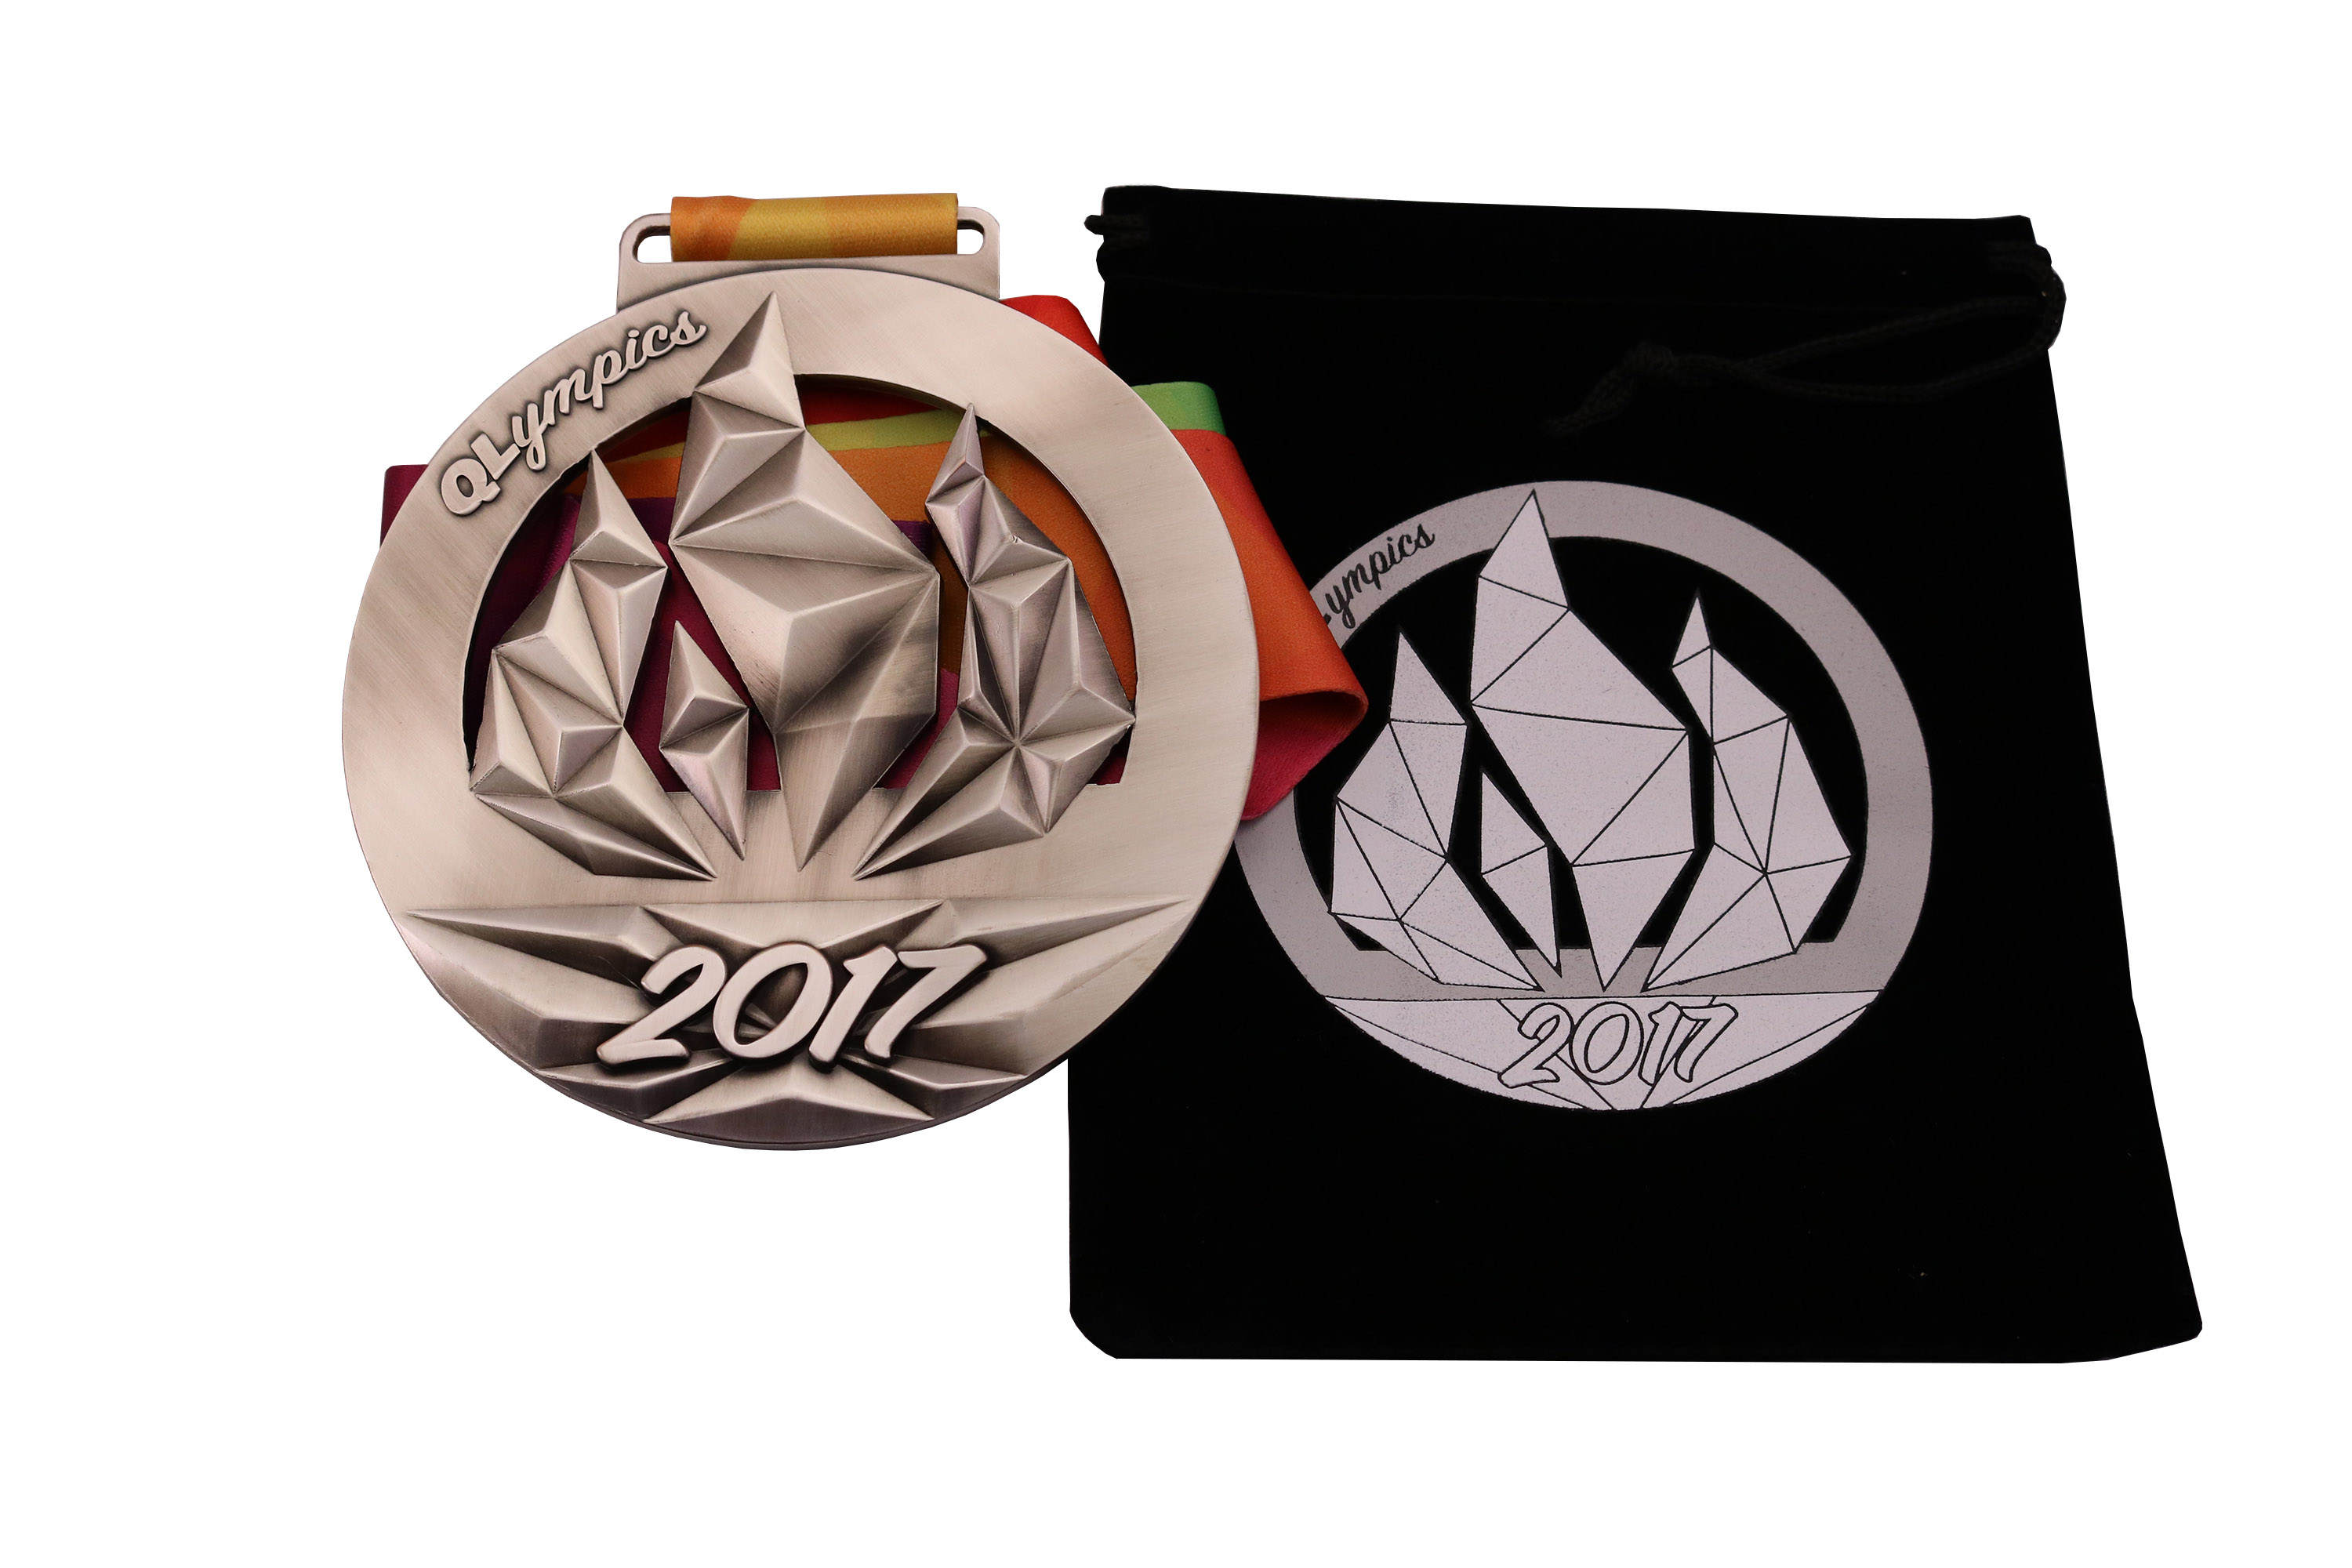 QL MEDAL AND BAG